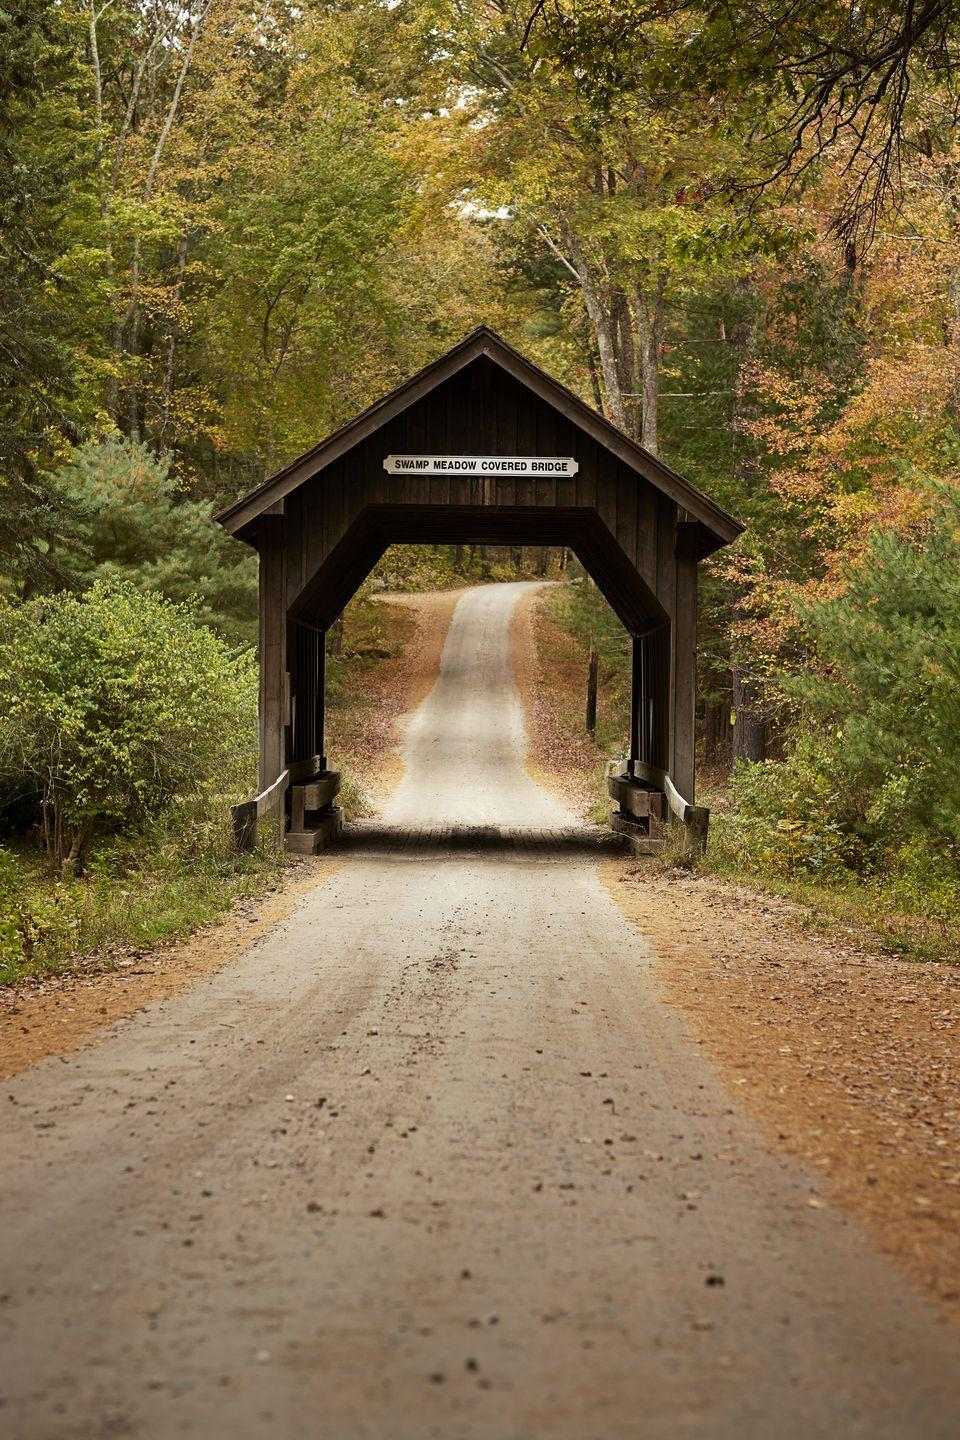 """<p>The northern town of Foster is said to be cursed by a vengeful woman, Dolly Cole, who lived in the area in the 1800s. It's rumored that she was <a href=""""https://www.onlyinyourstate.com/rhode-island/urban-legends-ri/"""" rel=""""nofollow noopener"""" target=""""_blank"""" data-ylk=""""slk:accused of witchcraft"""" class=""""link rapid-noclick-resp"""">accused of witchcraft</a>, so the townies set her home ablaze. She wasn't home at the time, however, her daughter was, and she tragically died in the fire. At the bereavement of her daughter, Cole placed a curse on the town, and sightings of her spirit are reported all over town.</p>"""